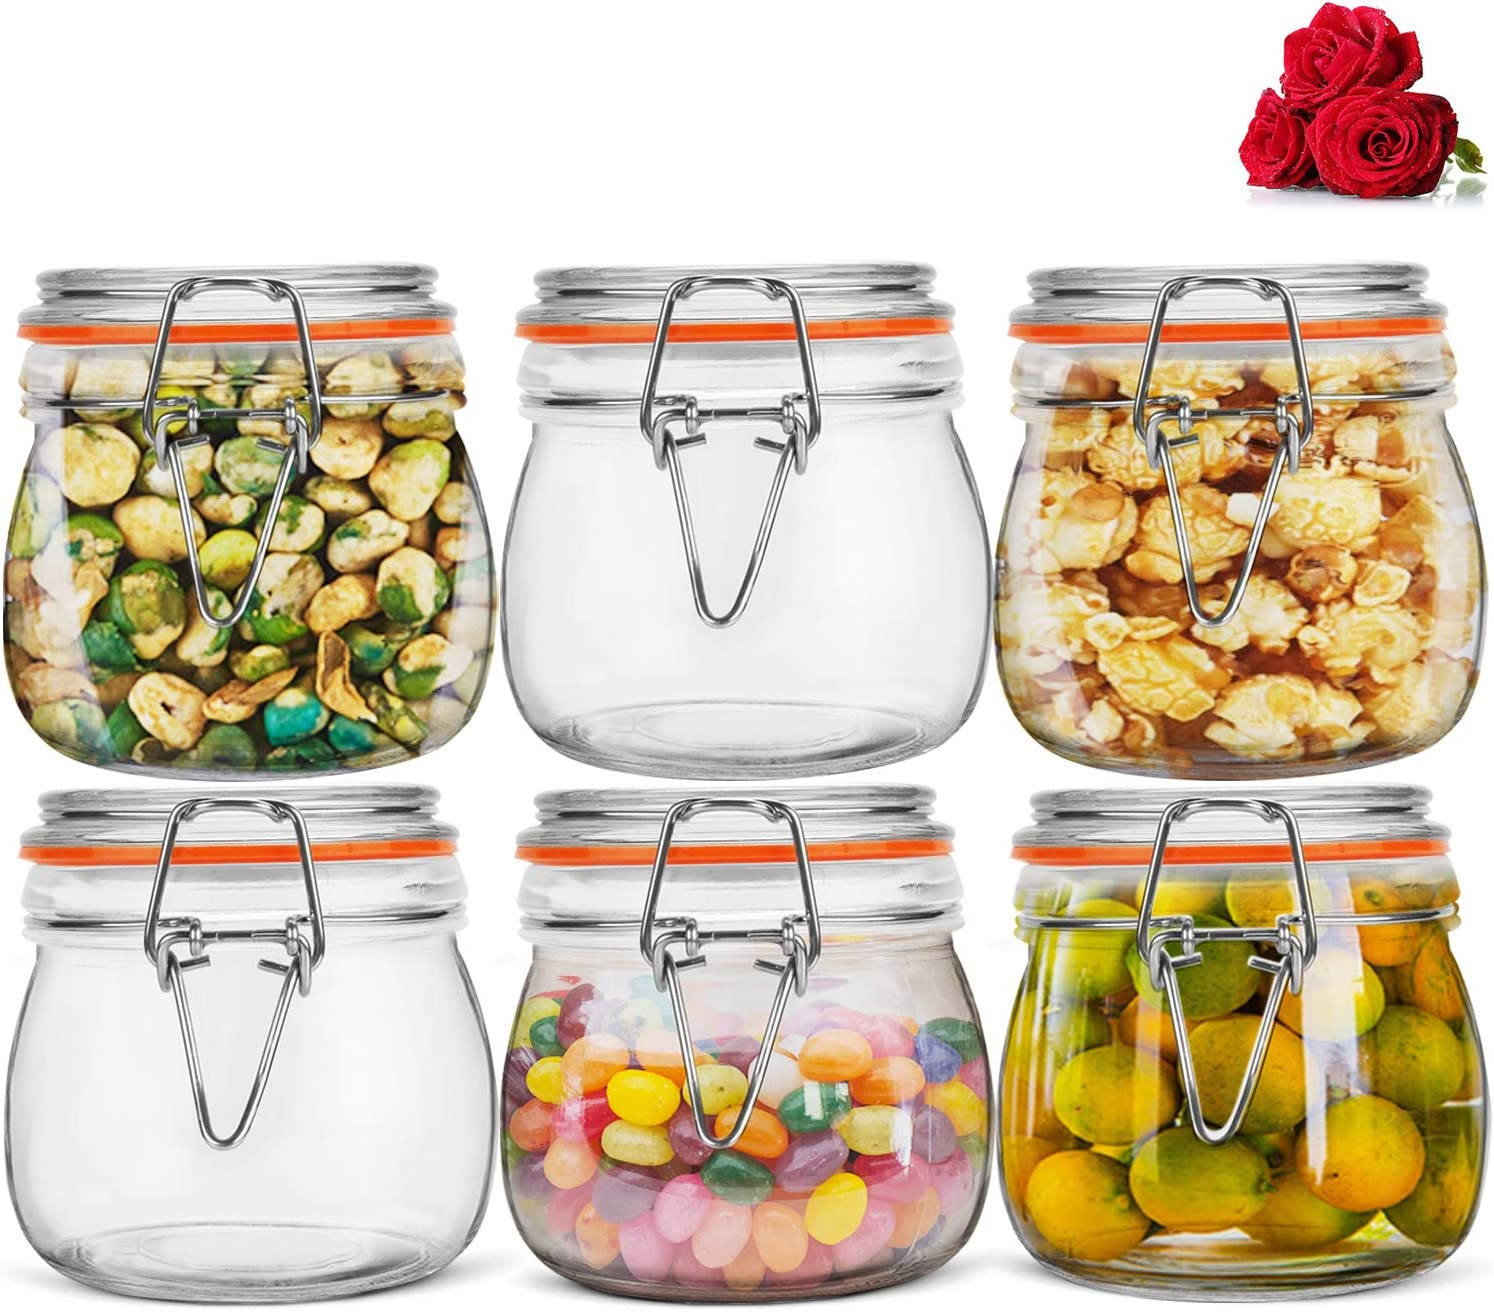 LovoIn 16oz 6 Pack Airtight Glass Canister 1 Pint Food Storage Jars with Sealed Airtight Lids for Fermenting, Preserving and Storage - Cereal, Preserves, Spice, Beans